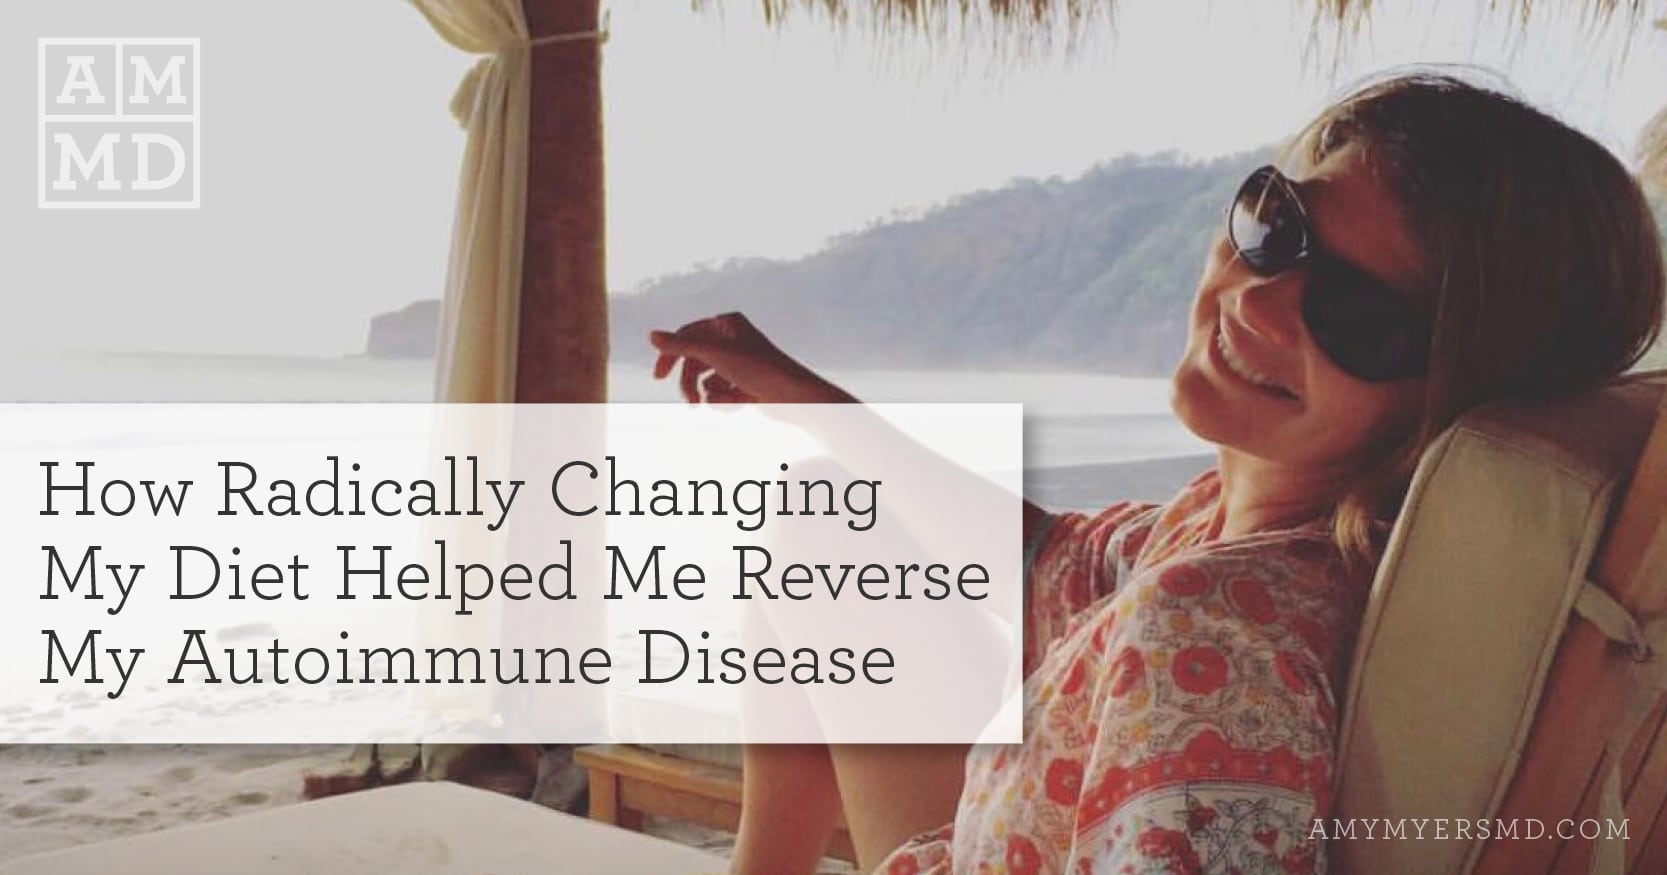 How Radically Changing My Diet Helped Me Reverse My Autoimmune Disease - Dr. Myers at the Beach - Featured Image - Amy Myers MD